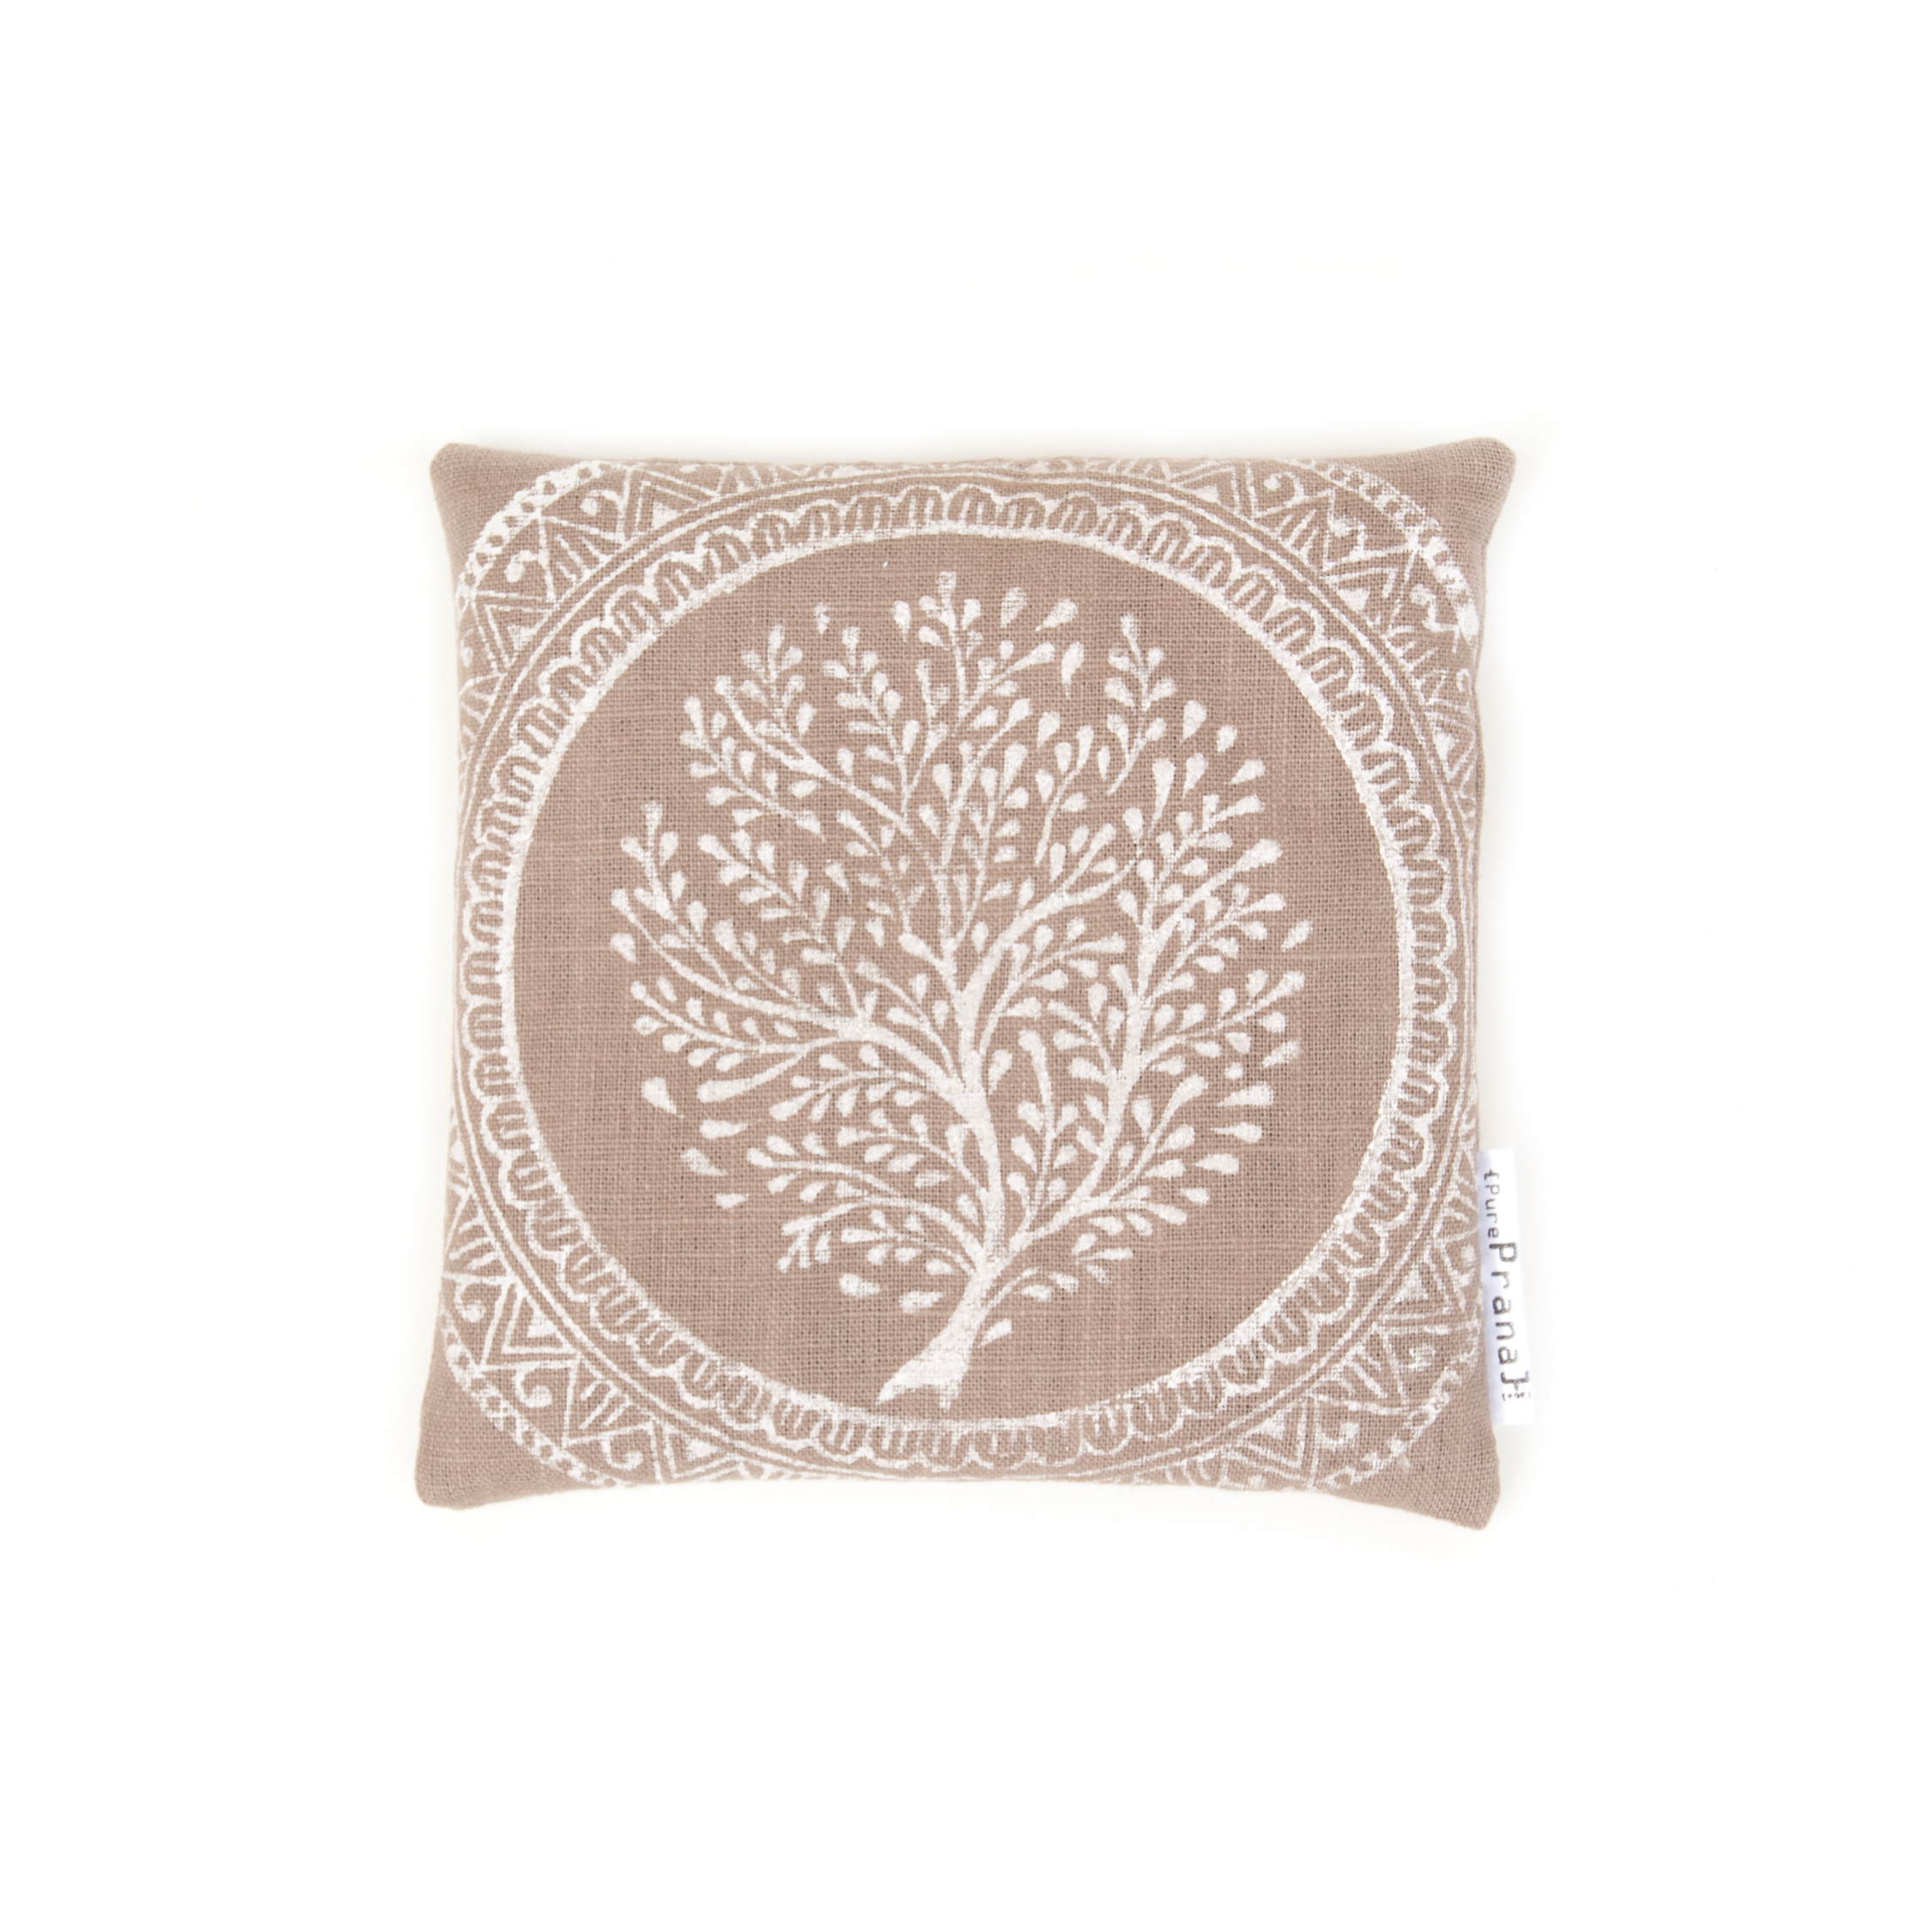 Singing bowl cushion Tree of Life